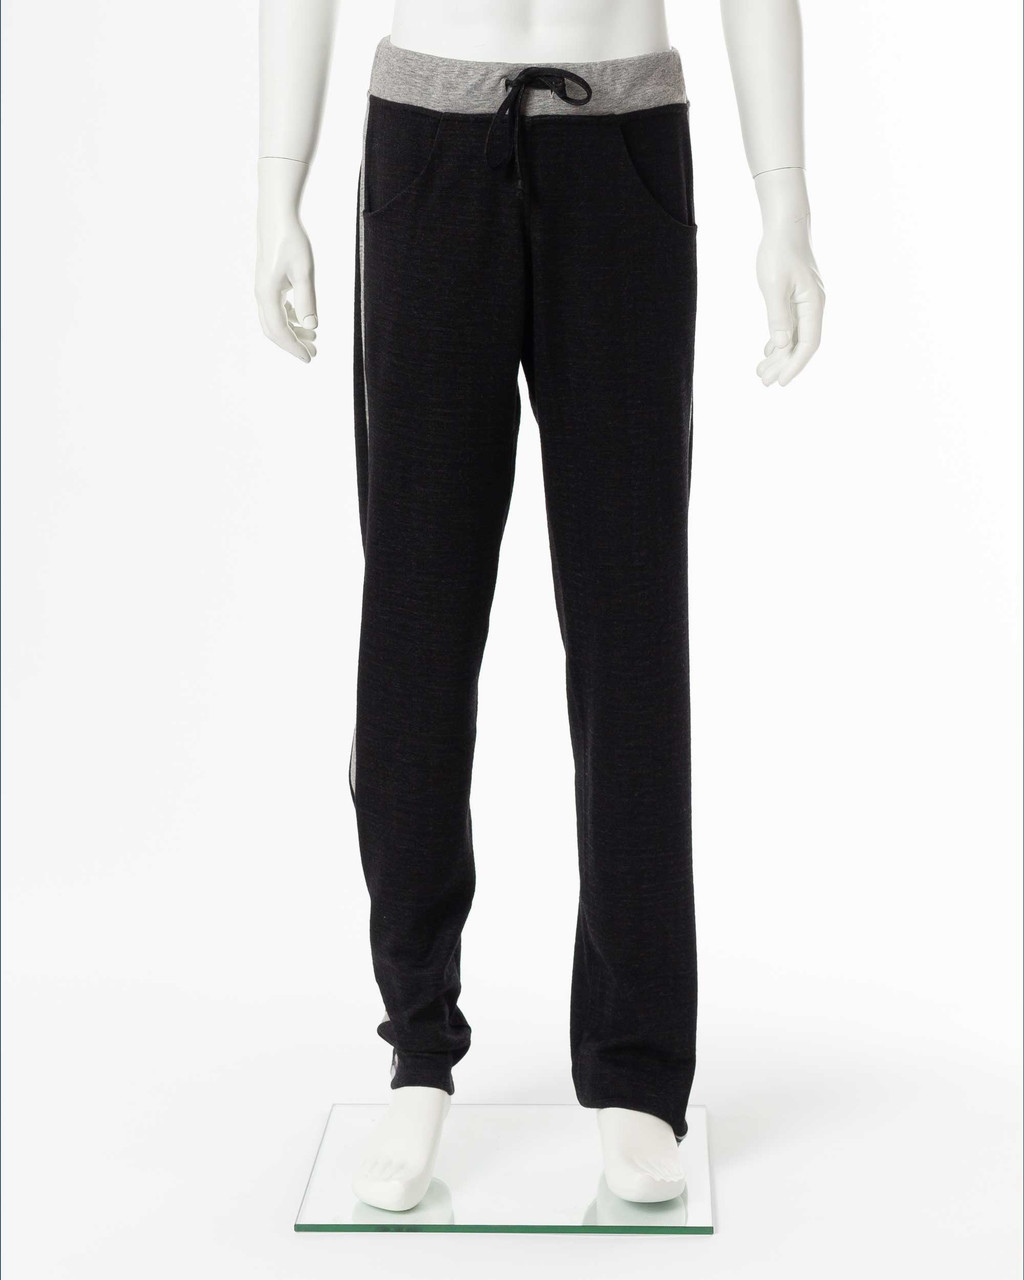 Alicia Adams Alpaca Sweatpants, alpaca clothing, alpaca lounge pants , alpaca sweater pants, alpaca clothing men's, black alpaca sweatpants